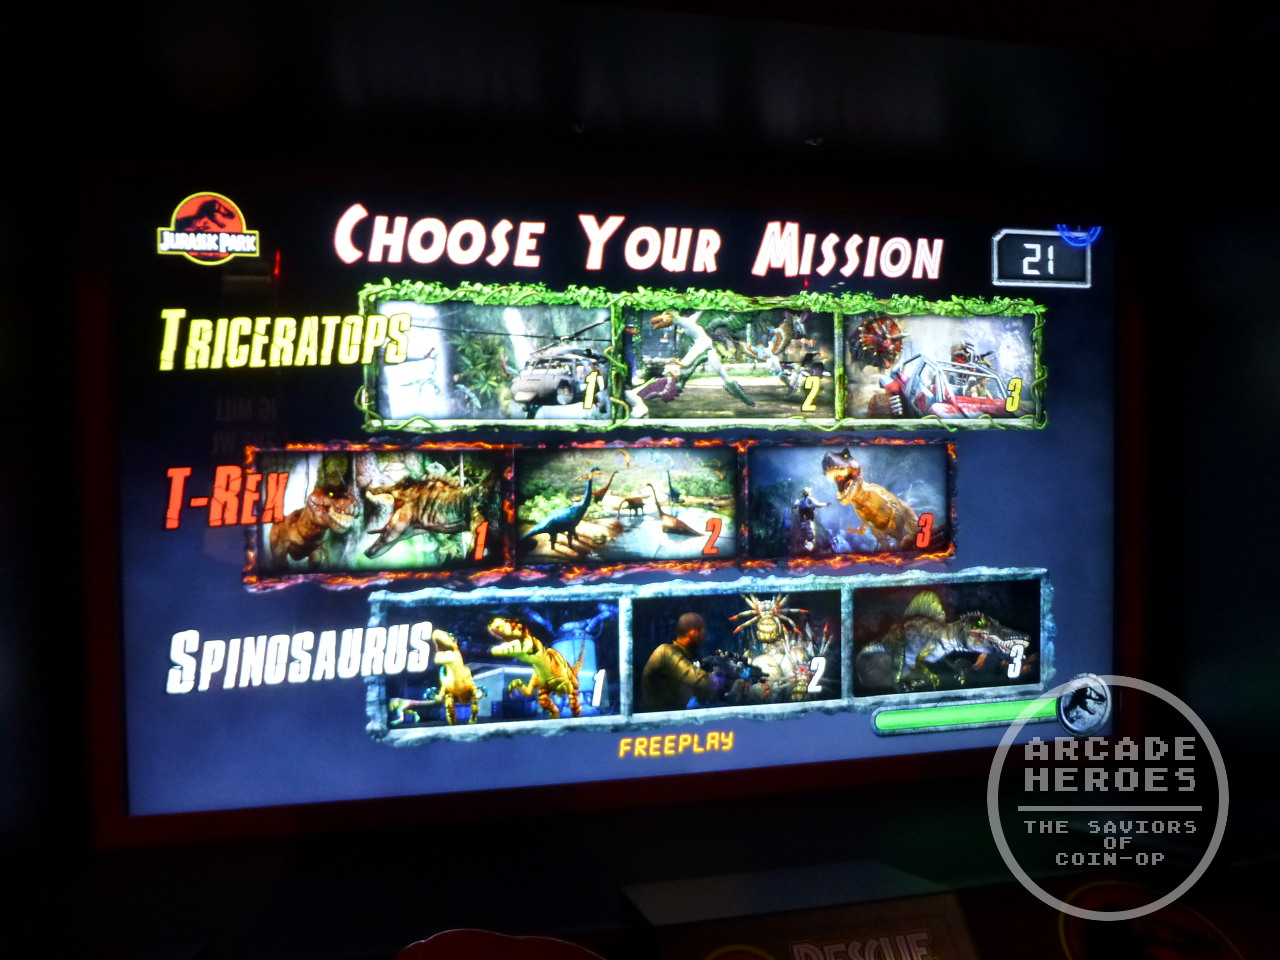 Arcade Heroes Q&A On Jurassic Park Arcade With Eugene Jarvis ...